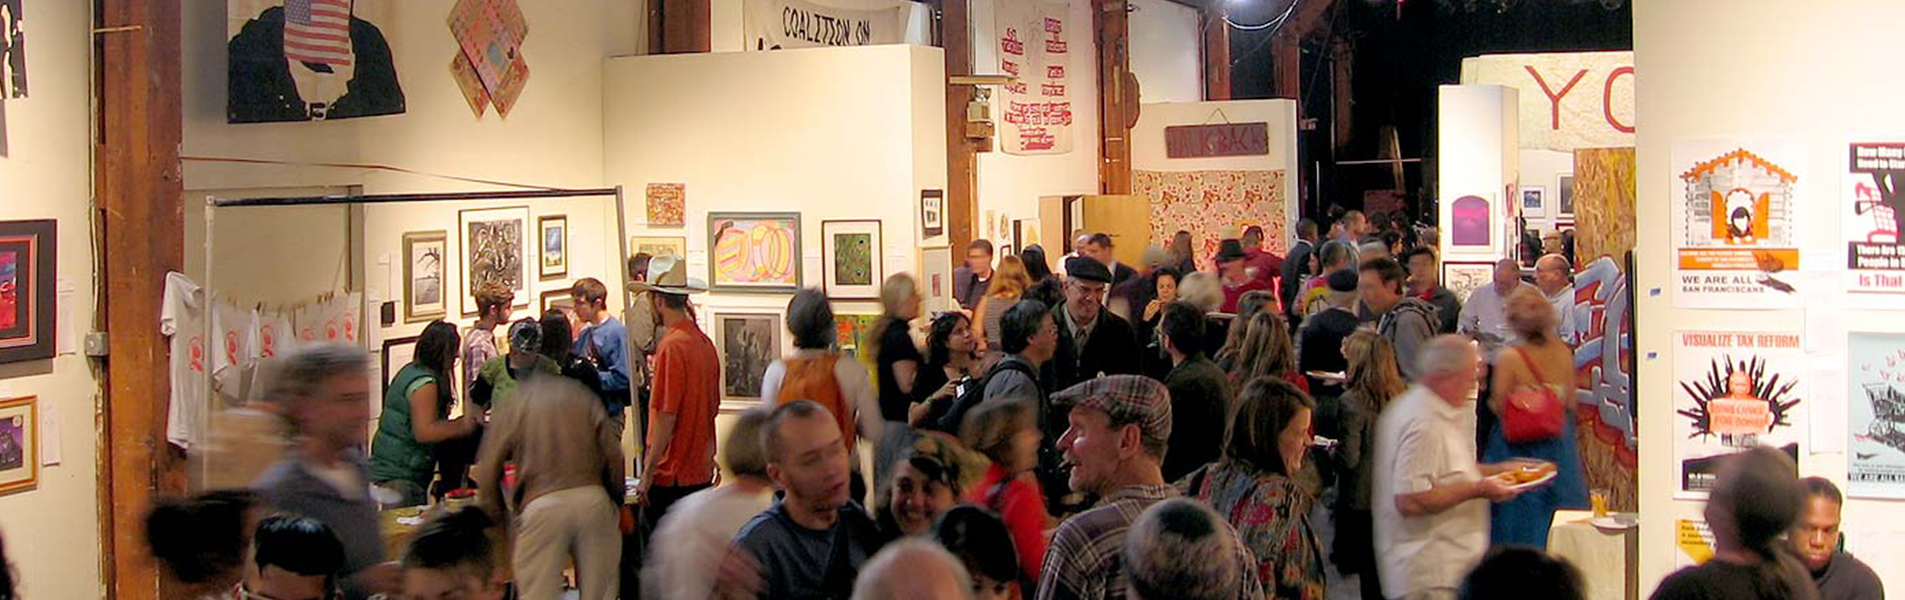 Art auctions south africa